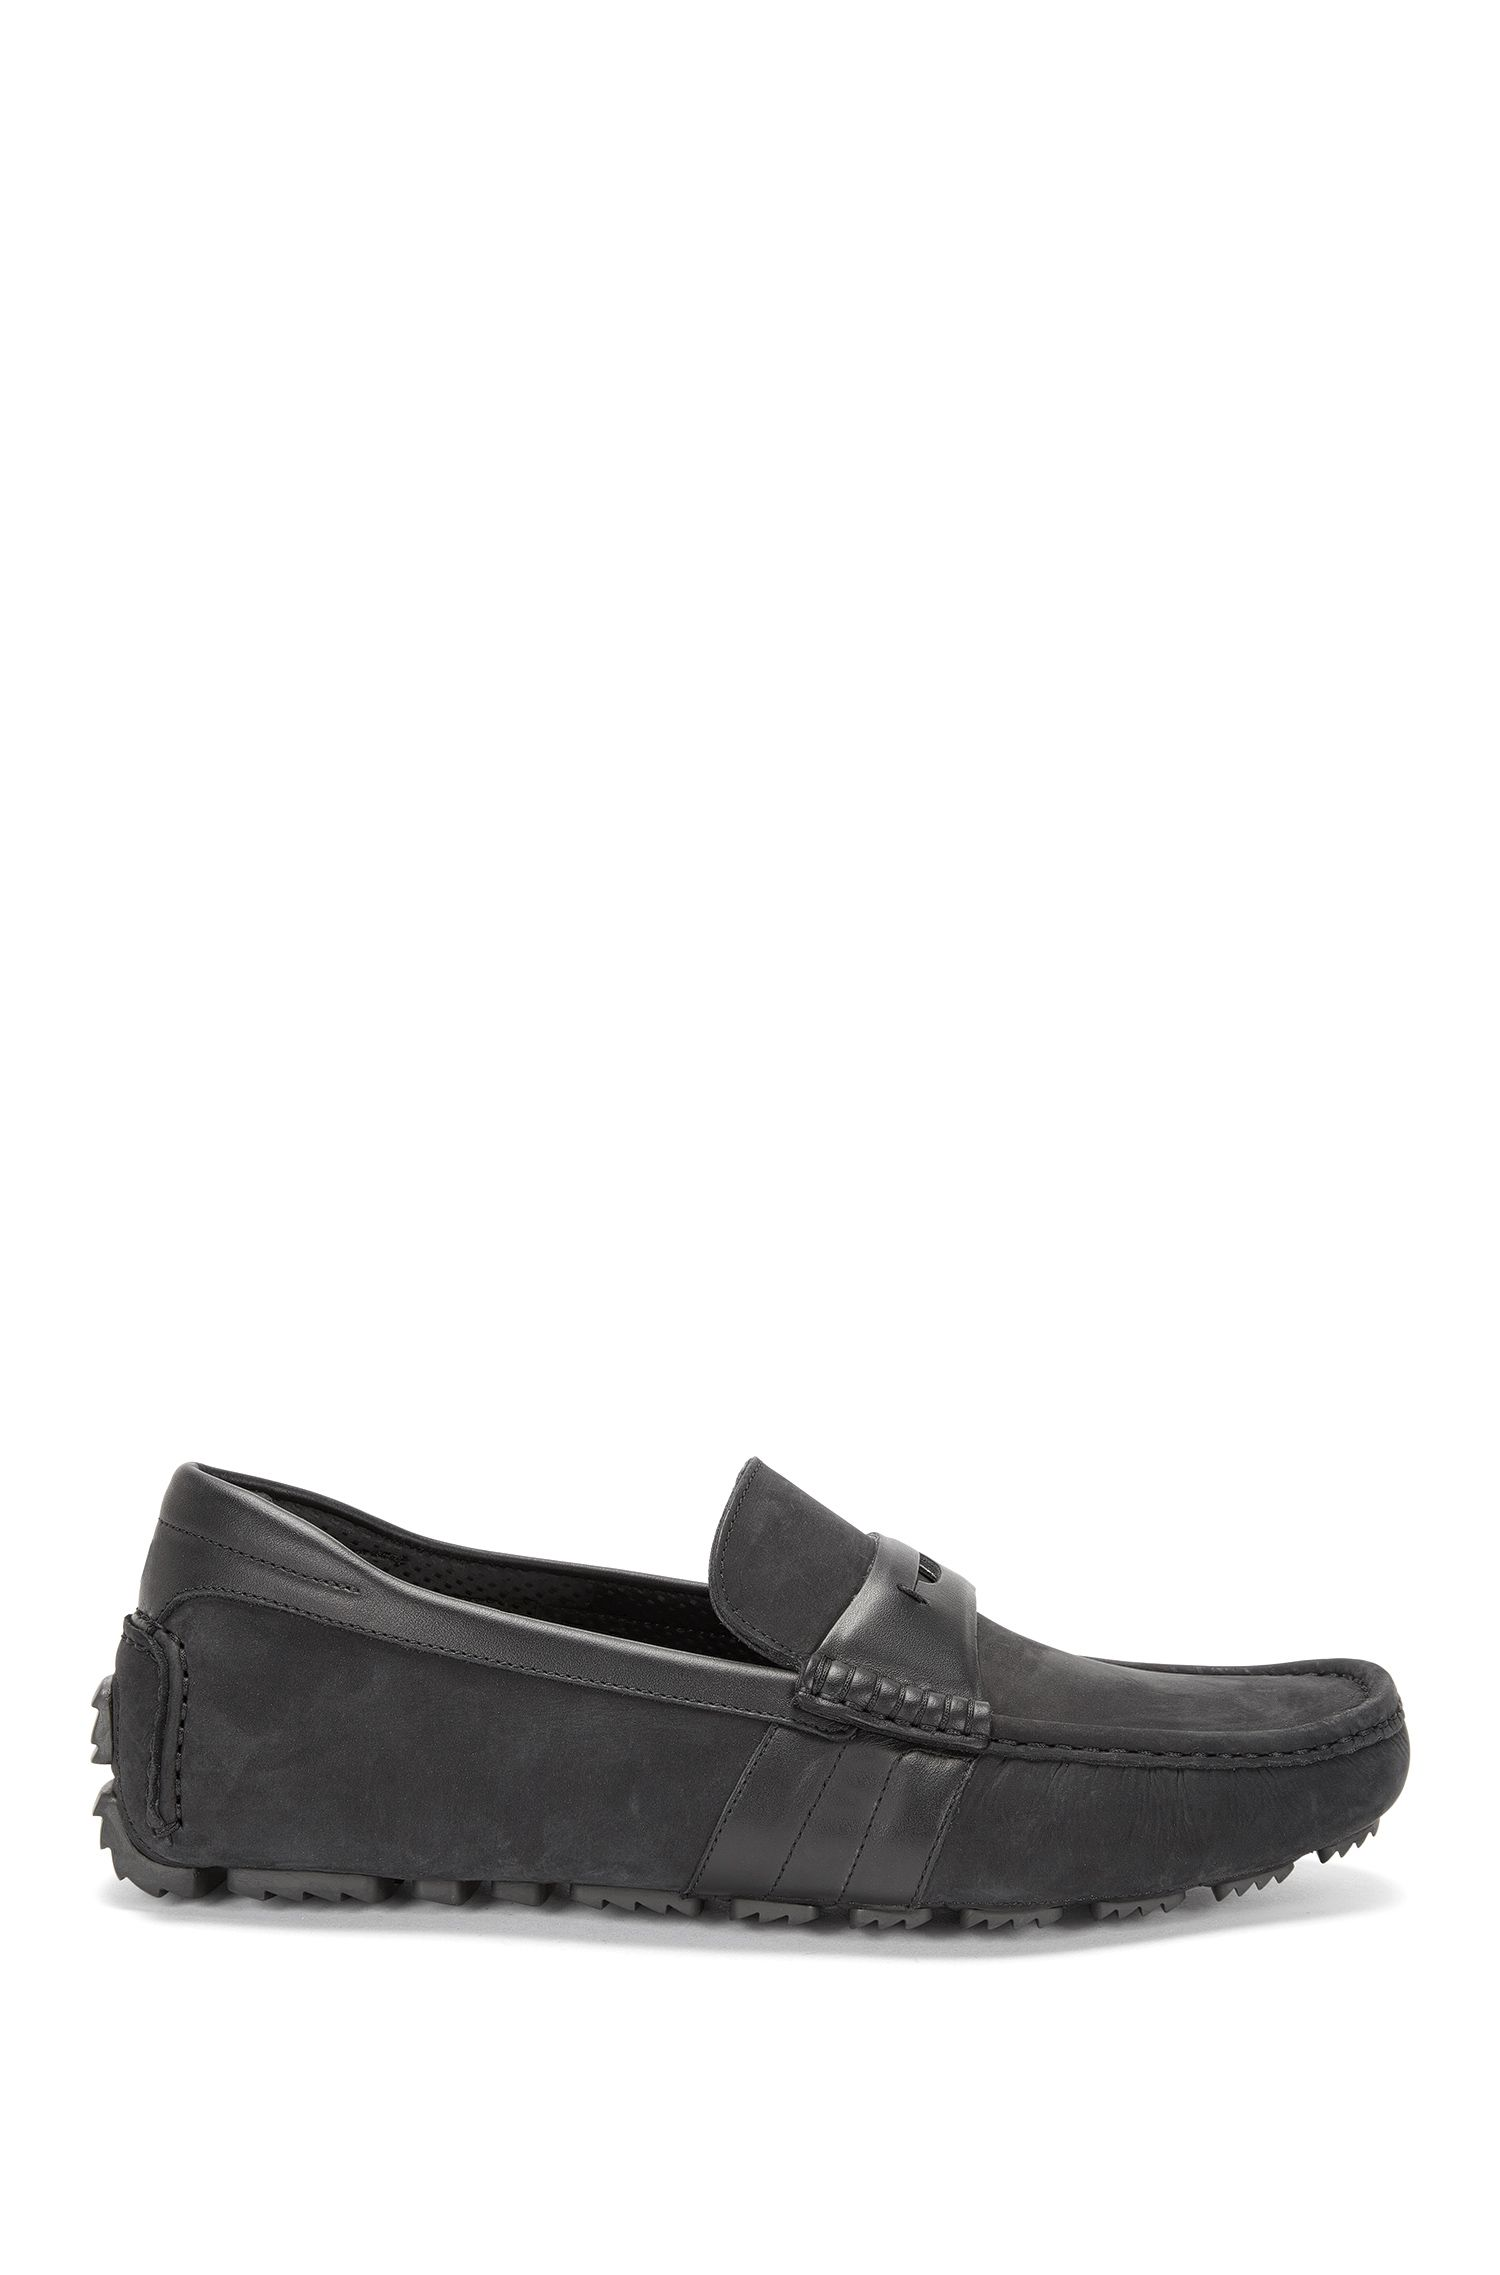 Italian Suede Driving Loafer   Driver Mocc Nult